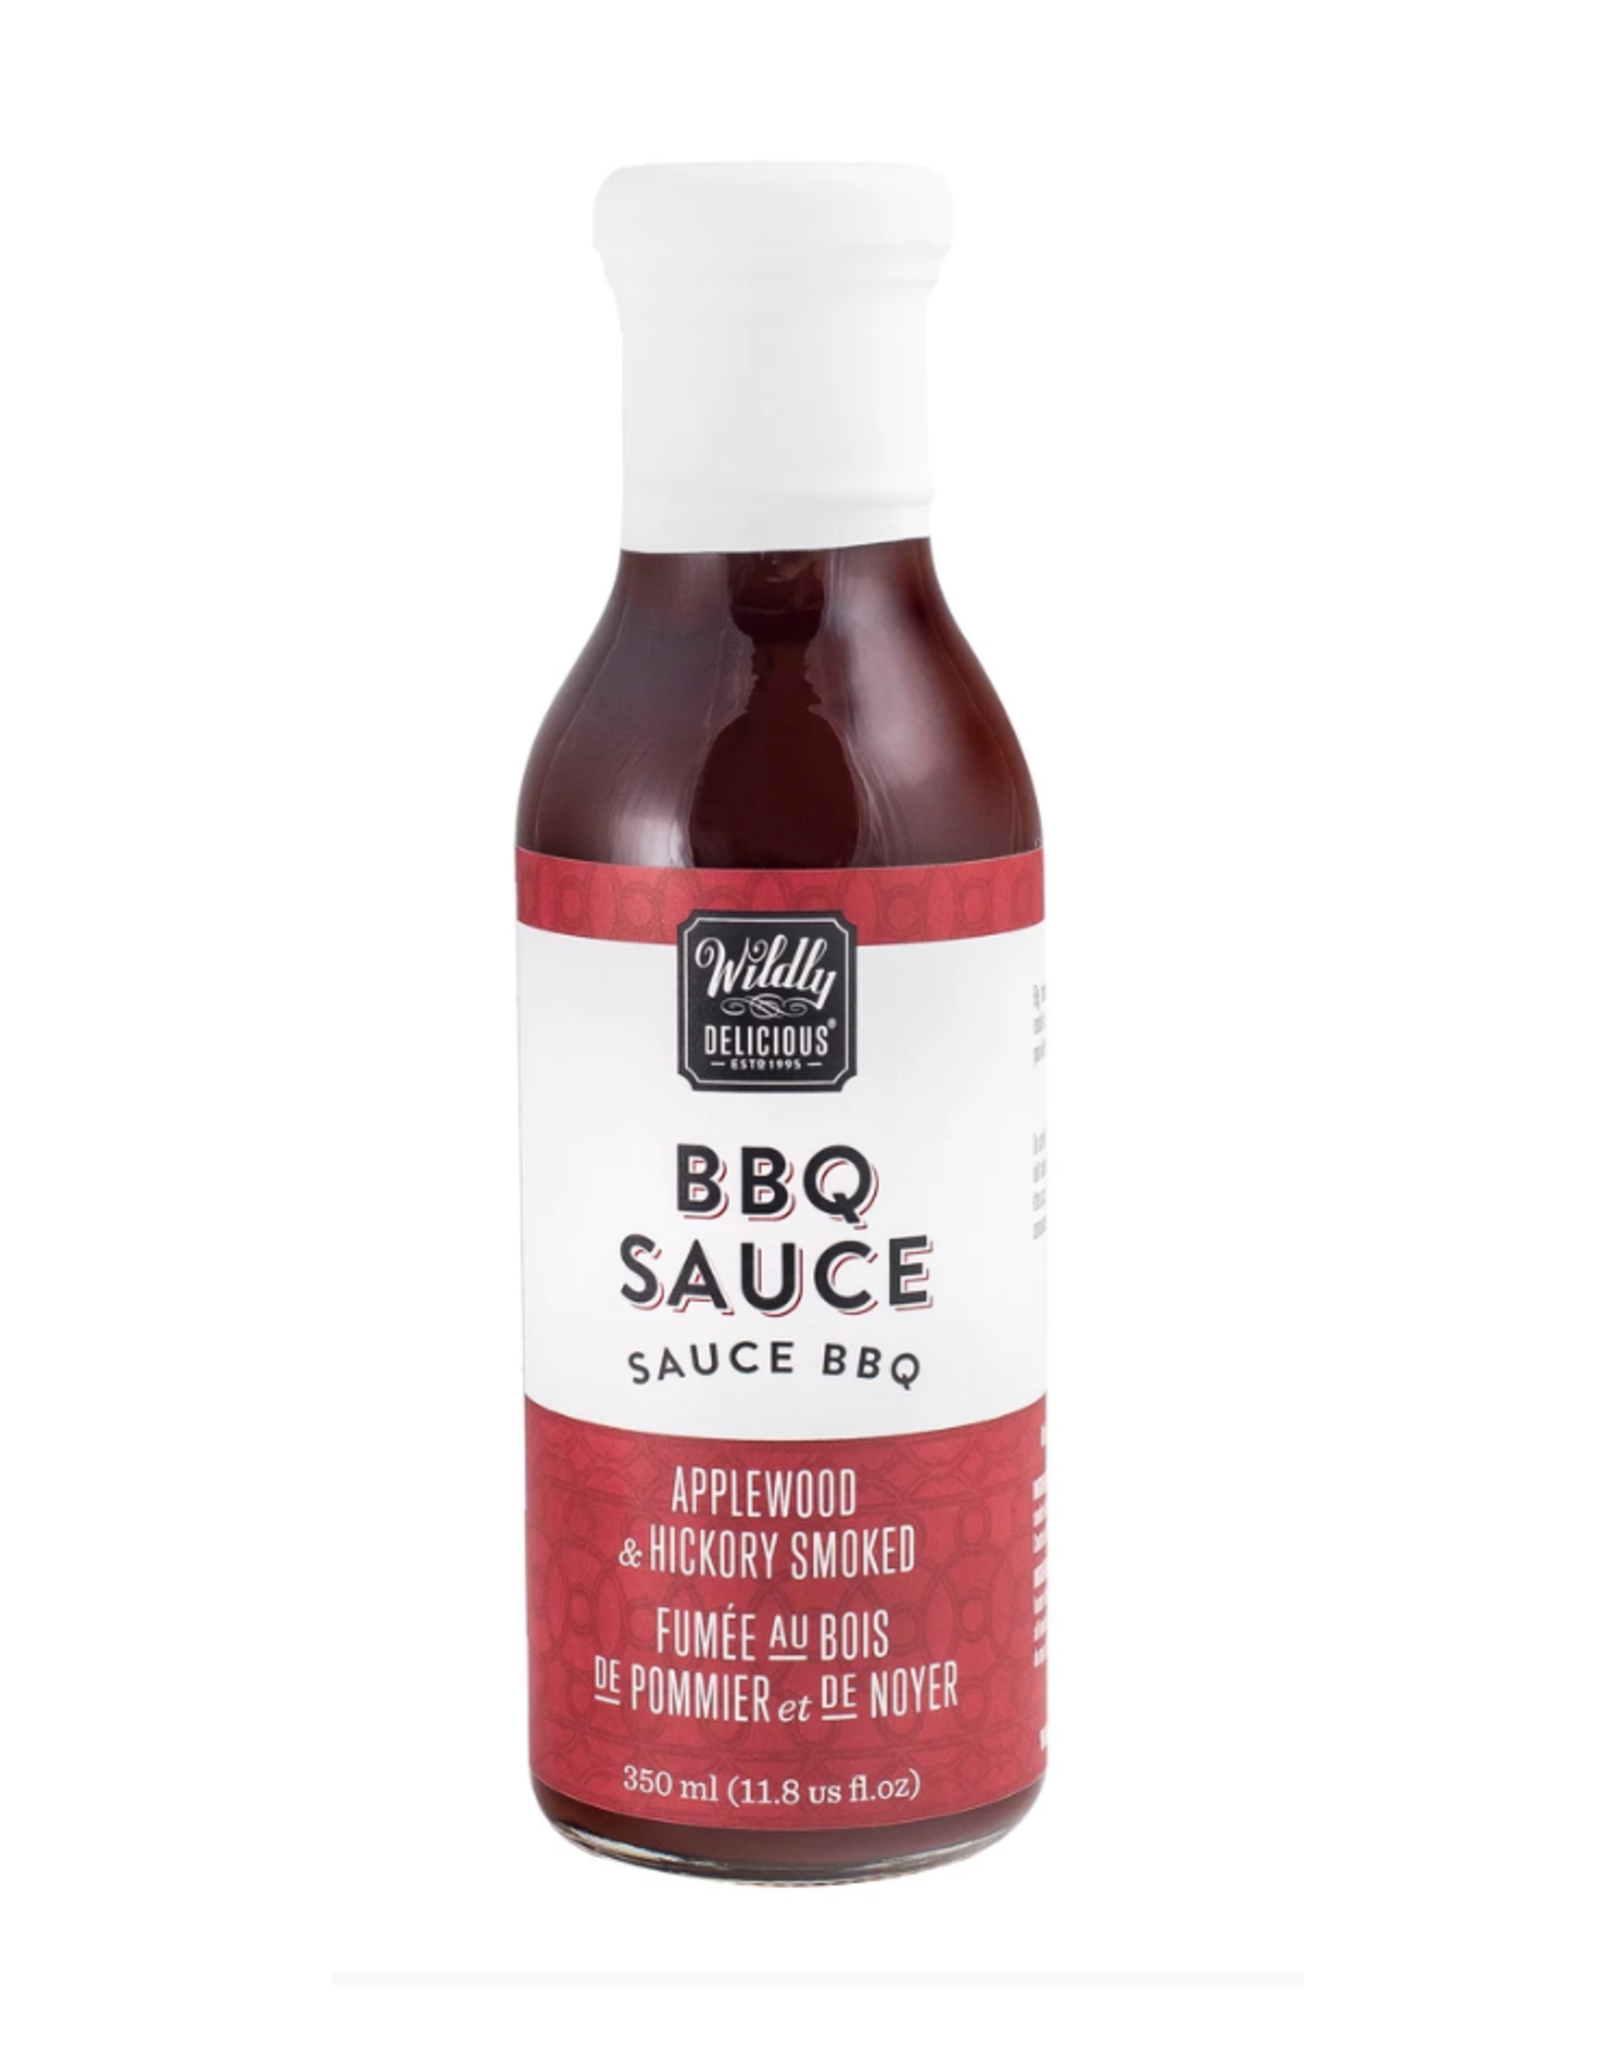 Wildly Delicious BBQ Sauce, Applewood Smoked